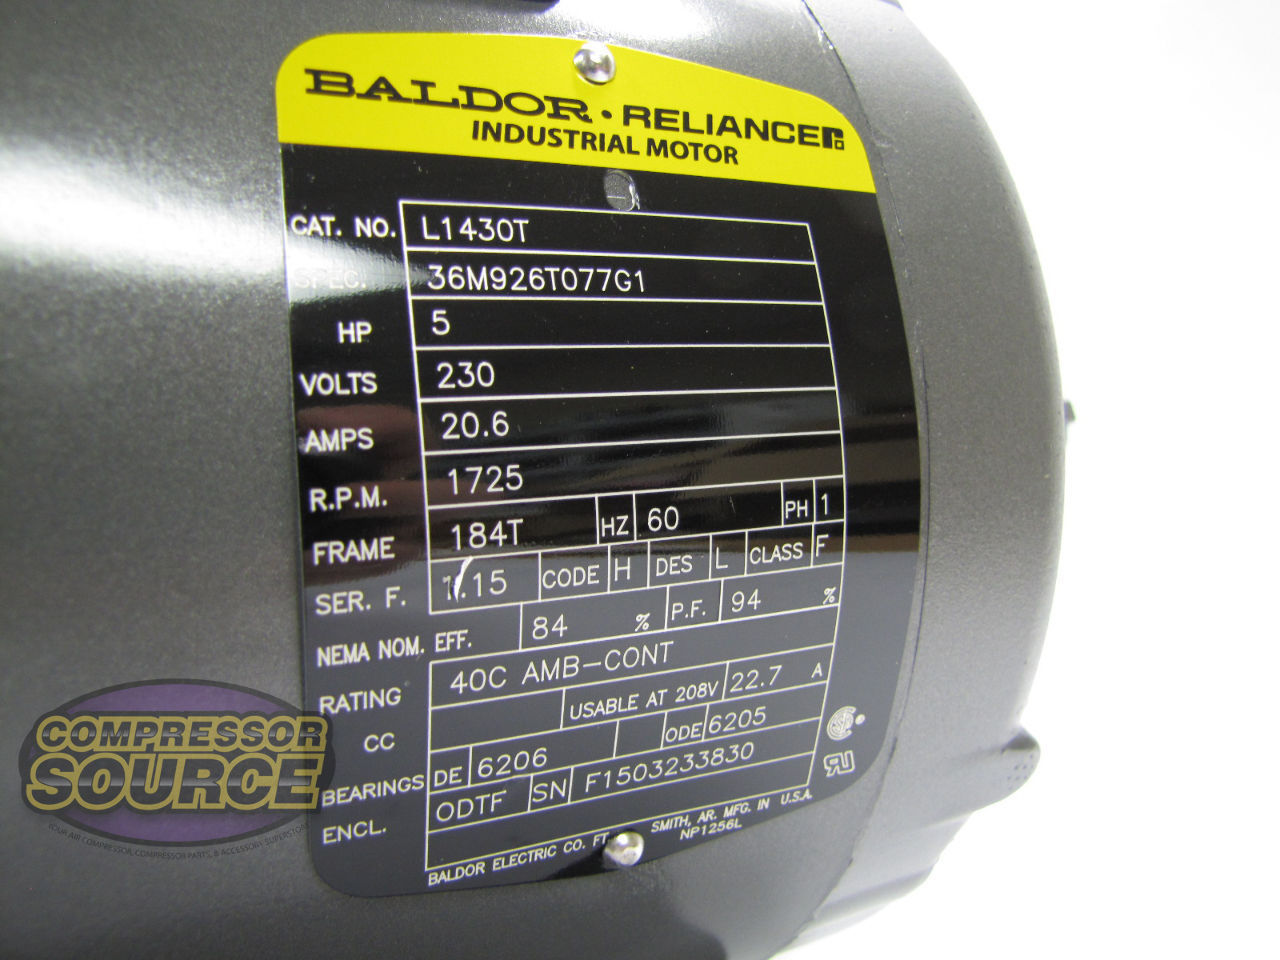 5 hp single phase baldor electric compressor motor 184t 3hp 220v single phase motor